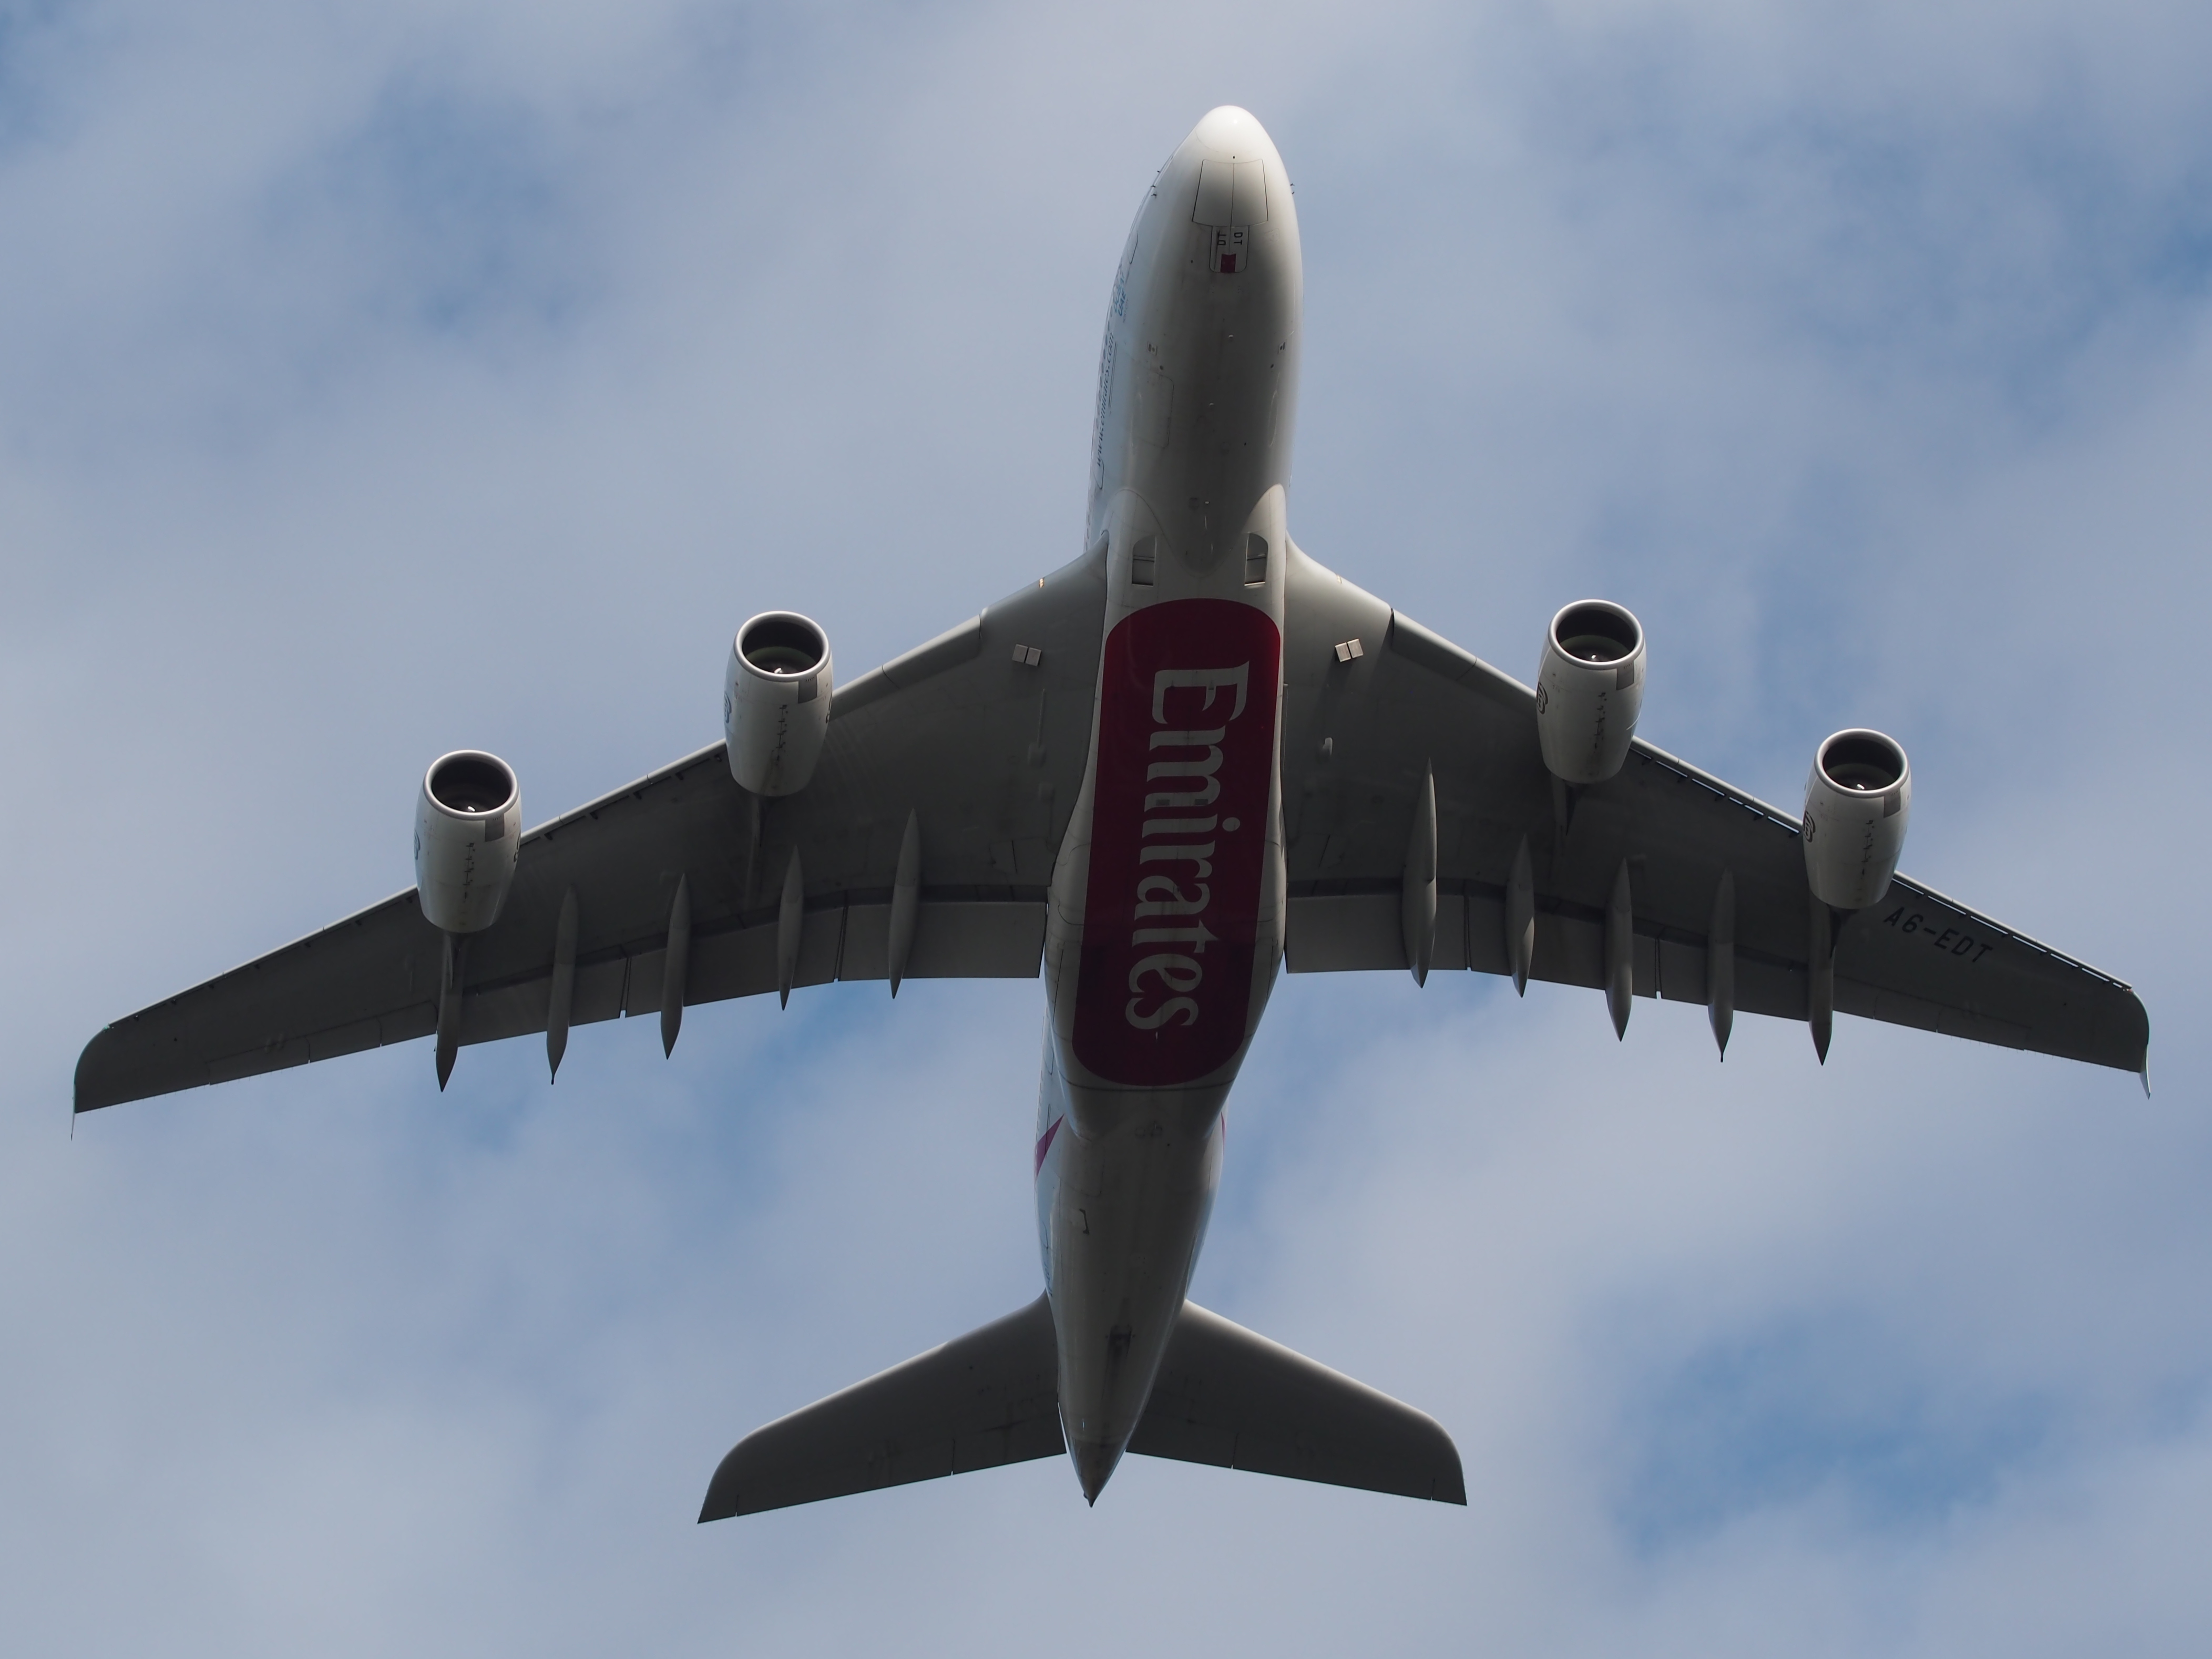 File:Airbus A380, A6-EDT take-off from Amsterdam Schiphol